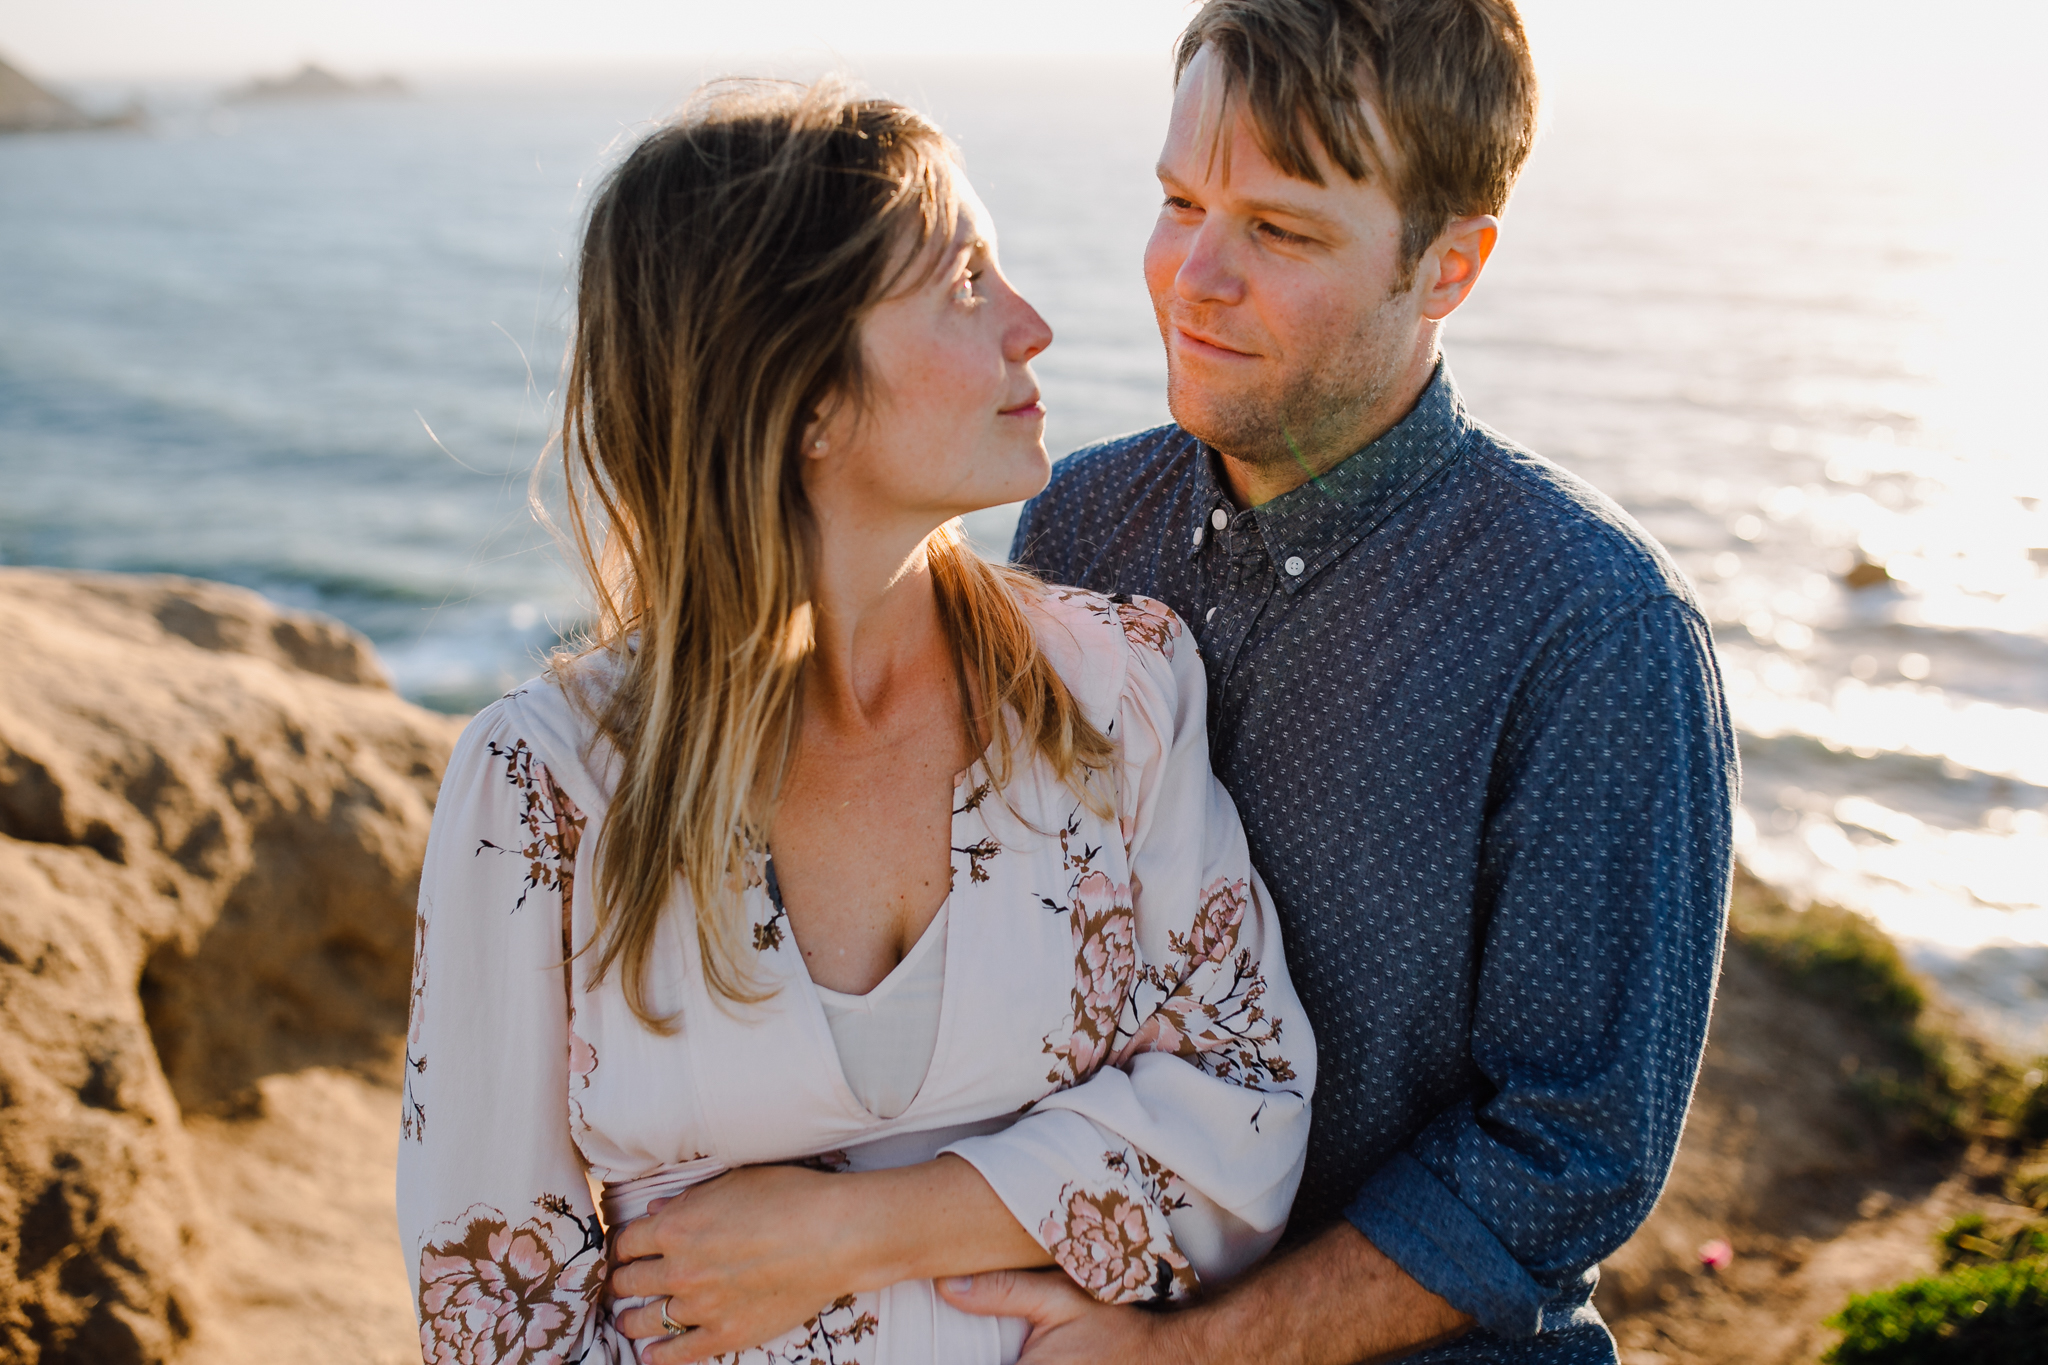 pacificamaternityphotography-mikeandleanne-008.jpg